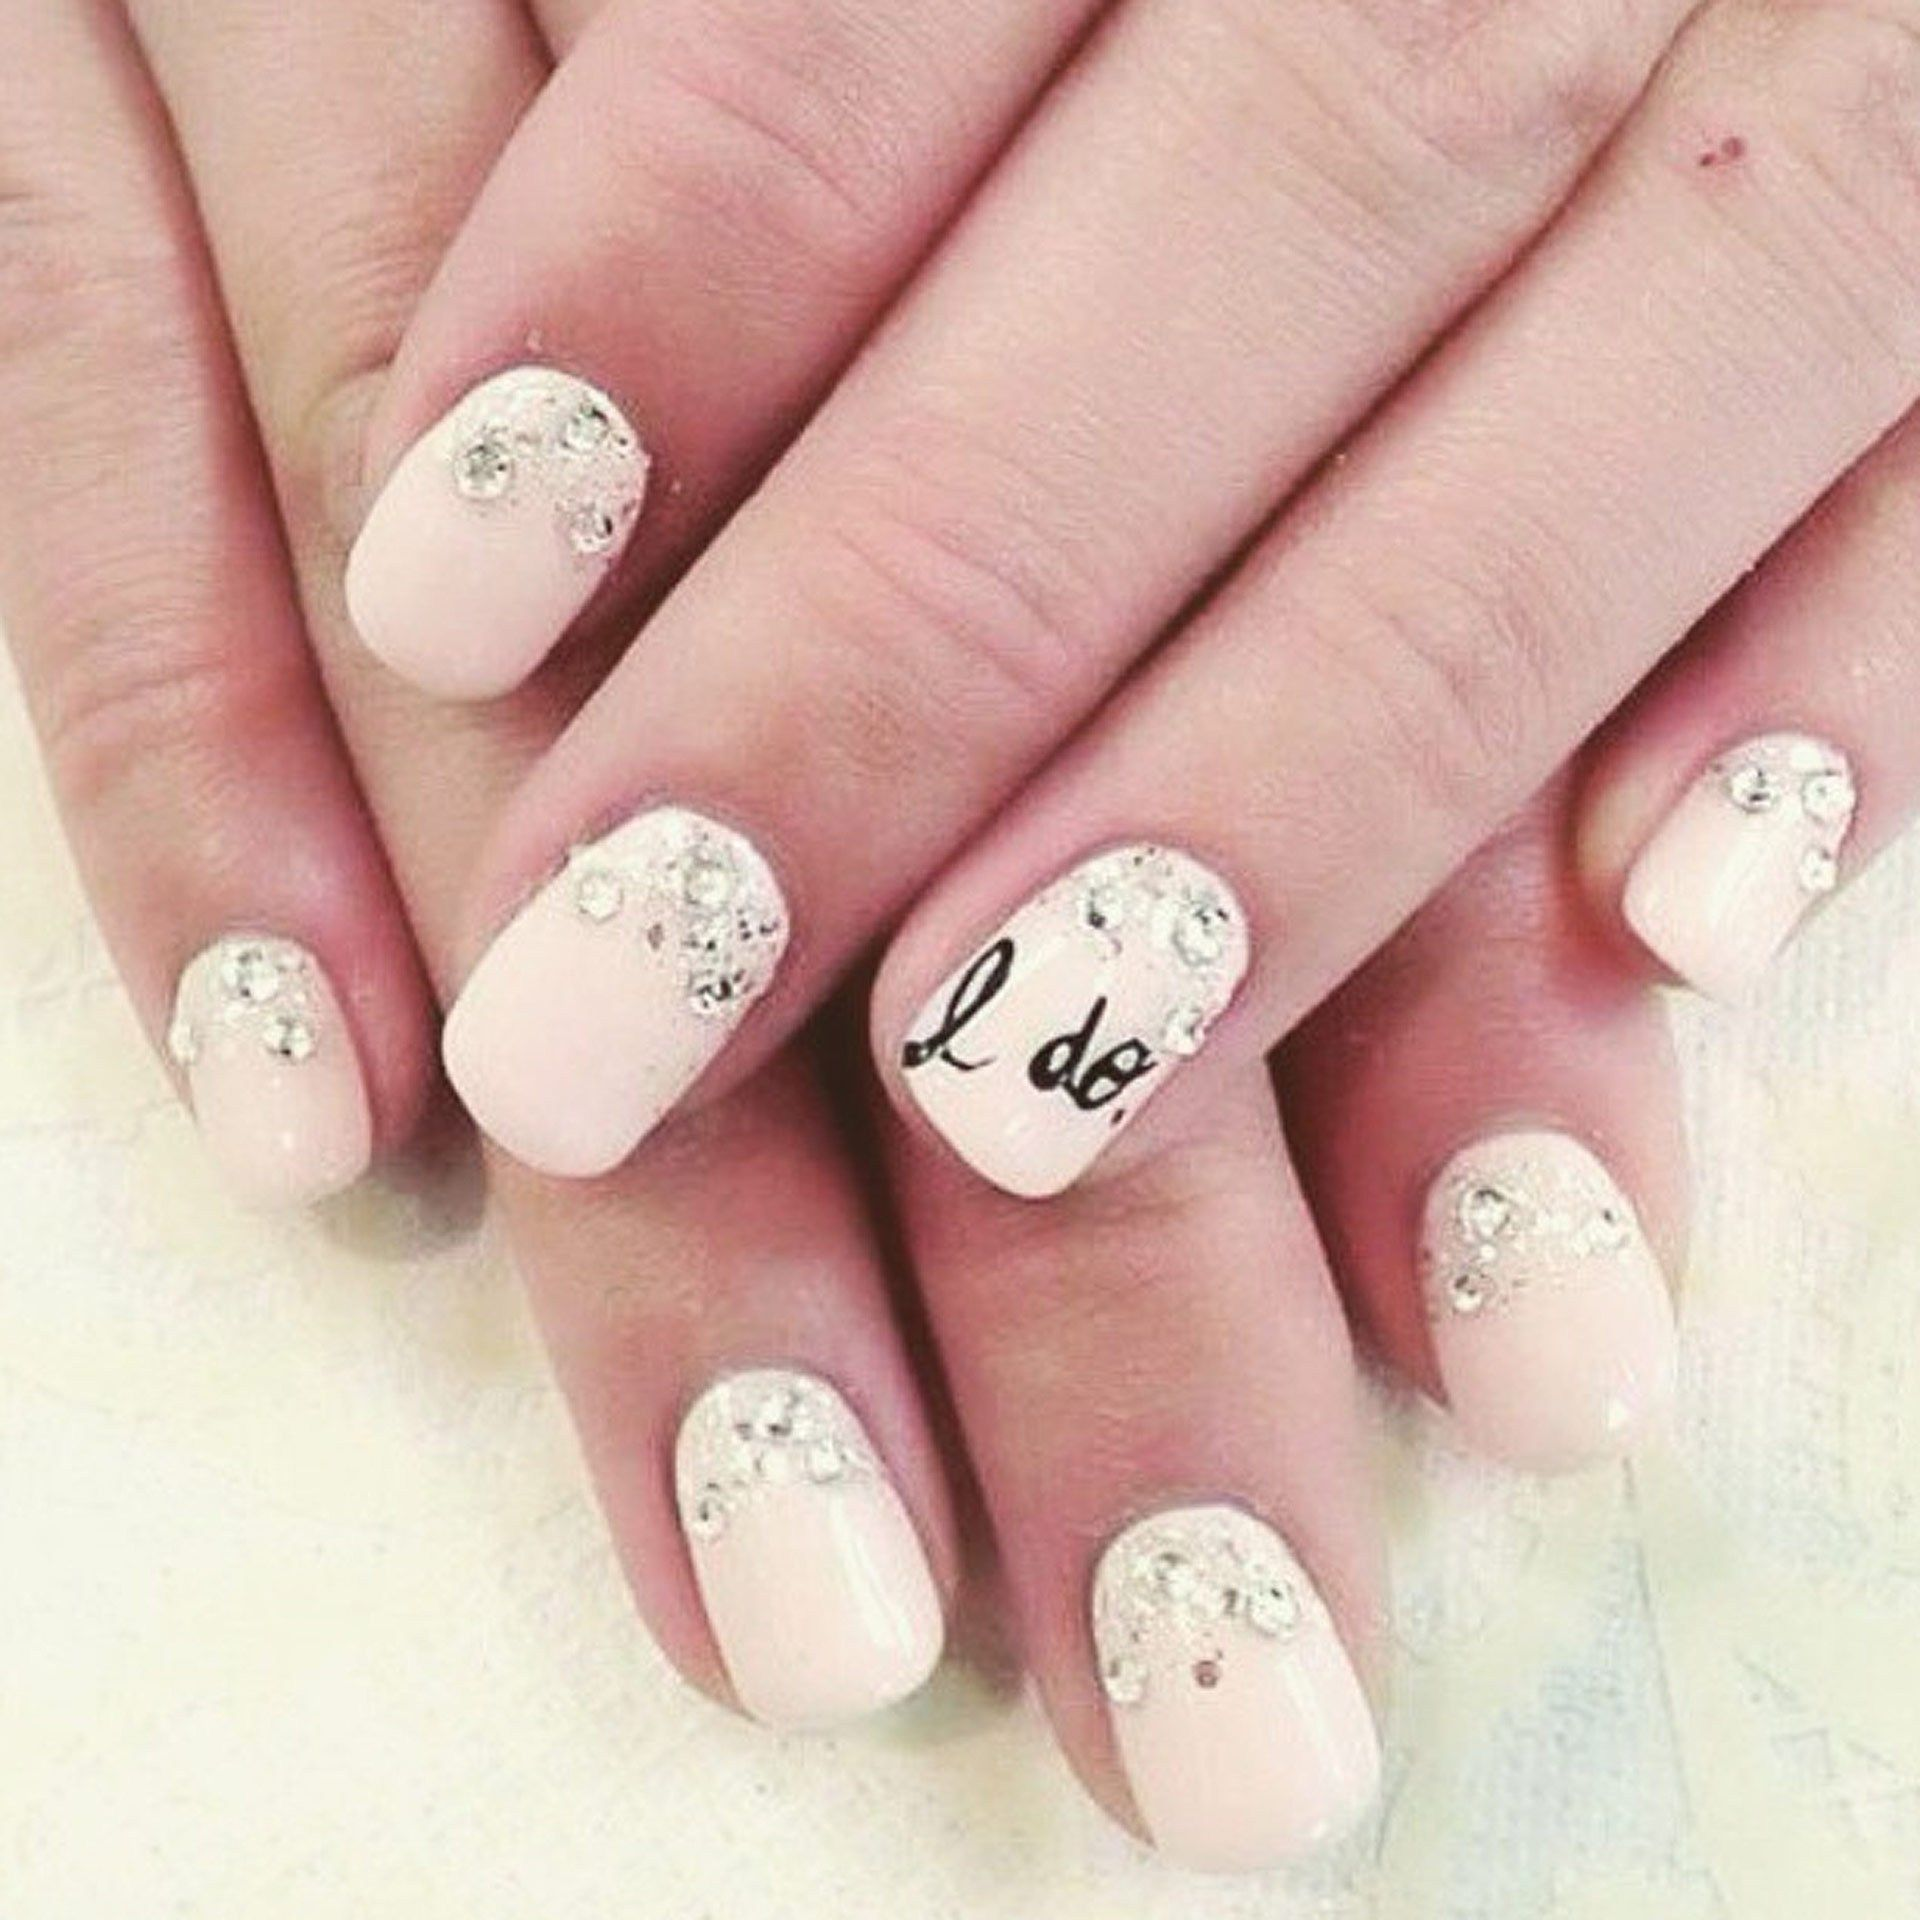 The Nail Art Ideas We Re Totally Trying For Our Next Mani